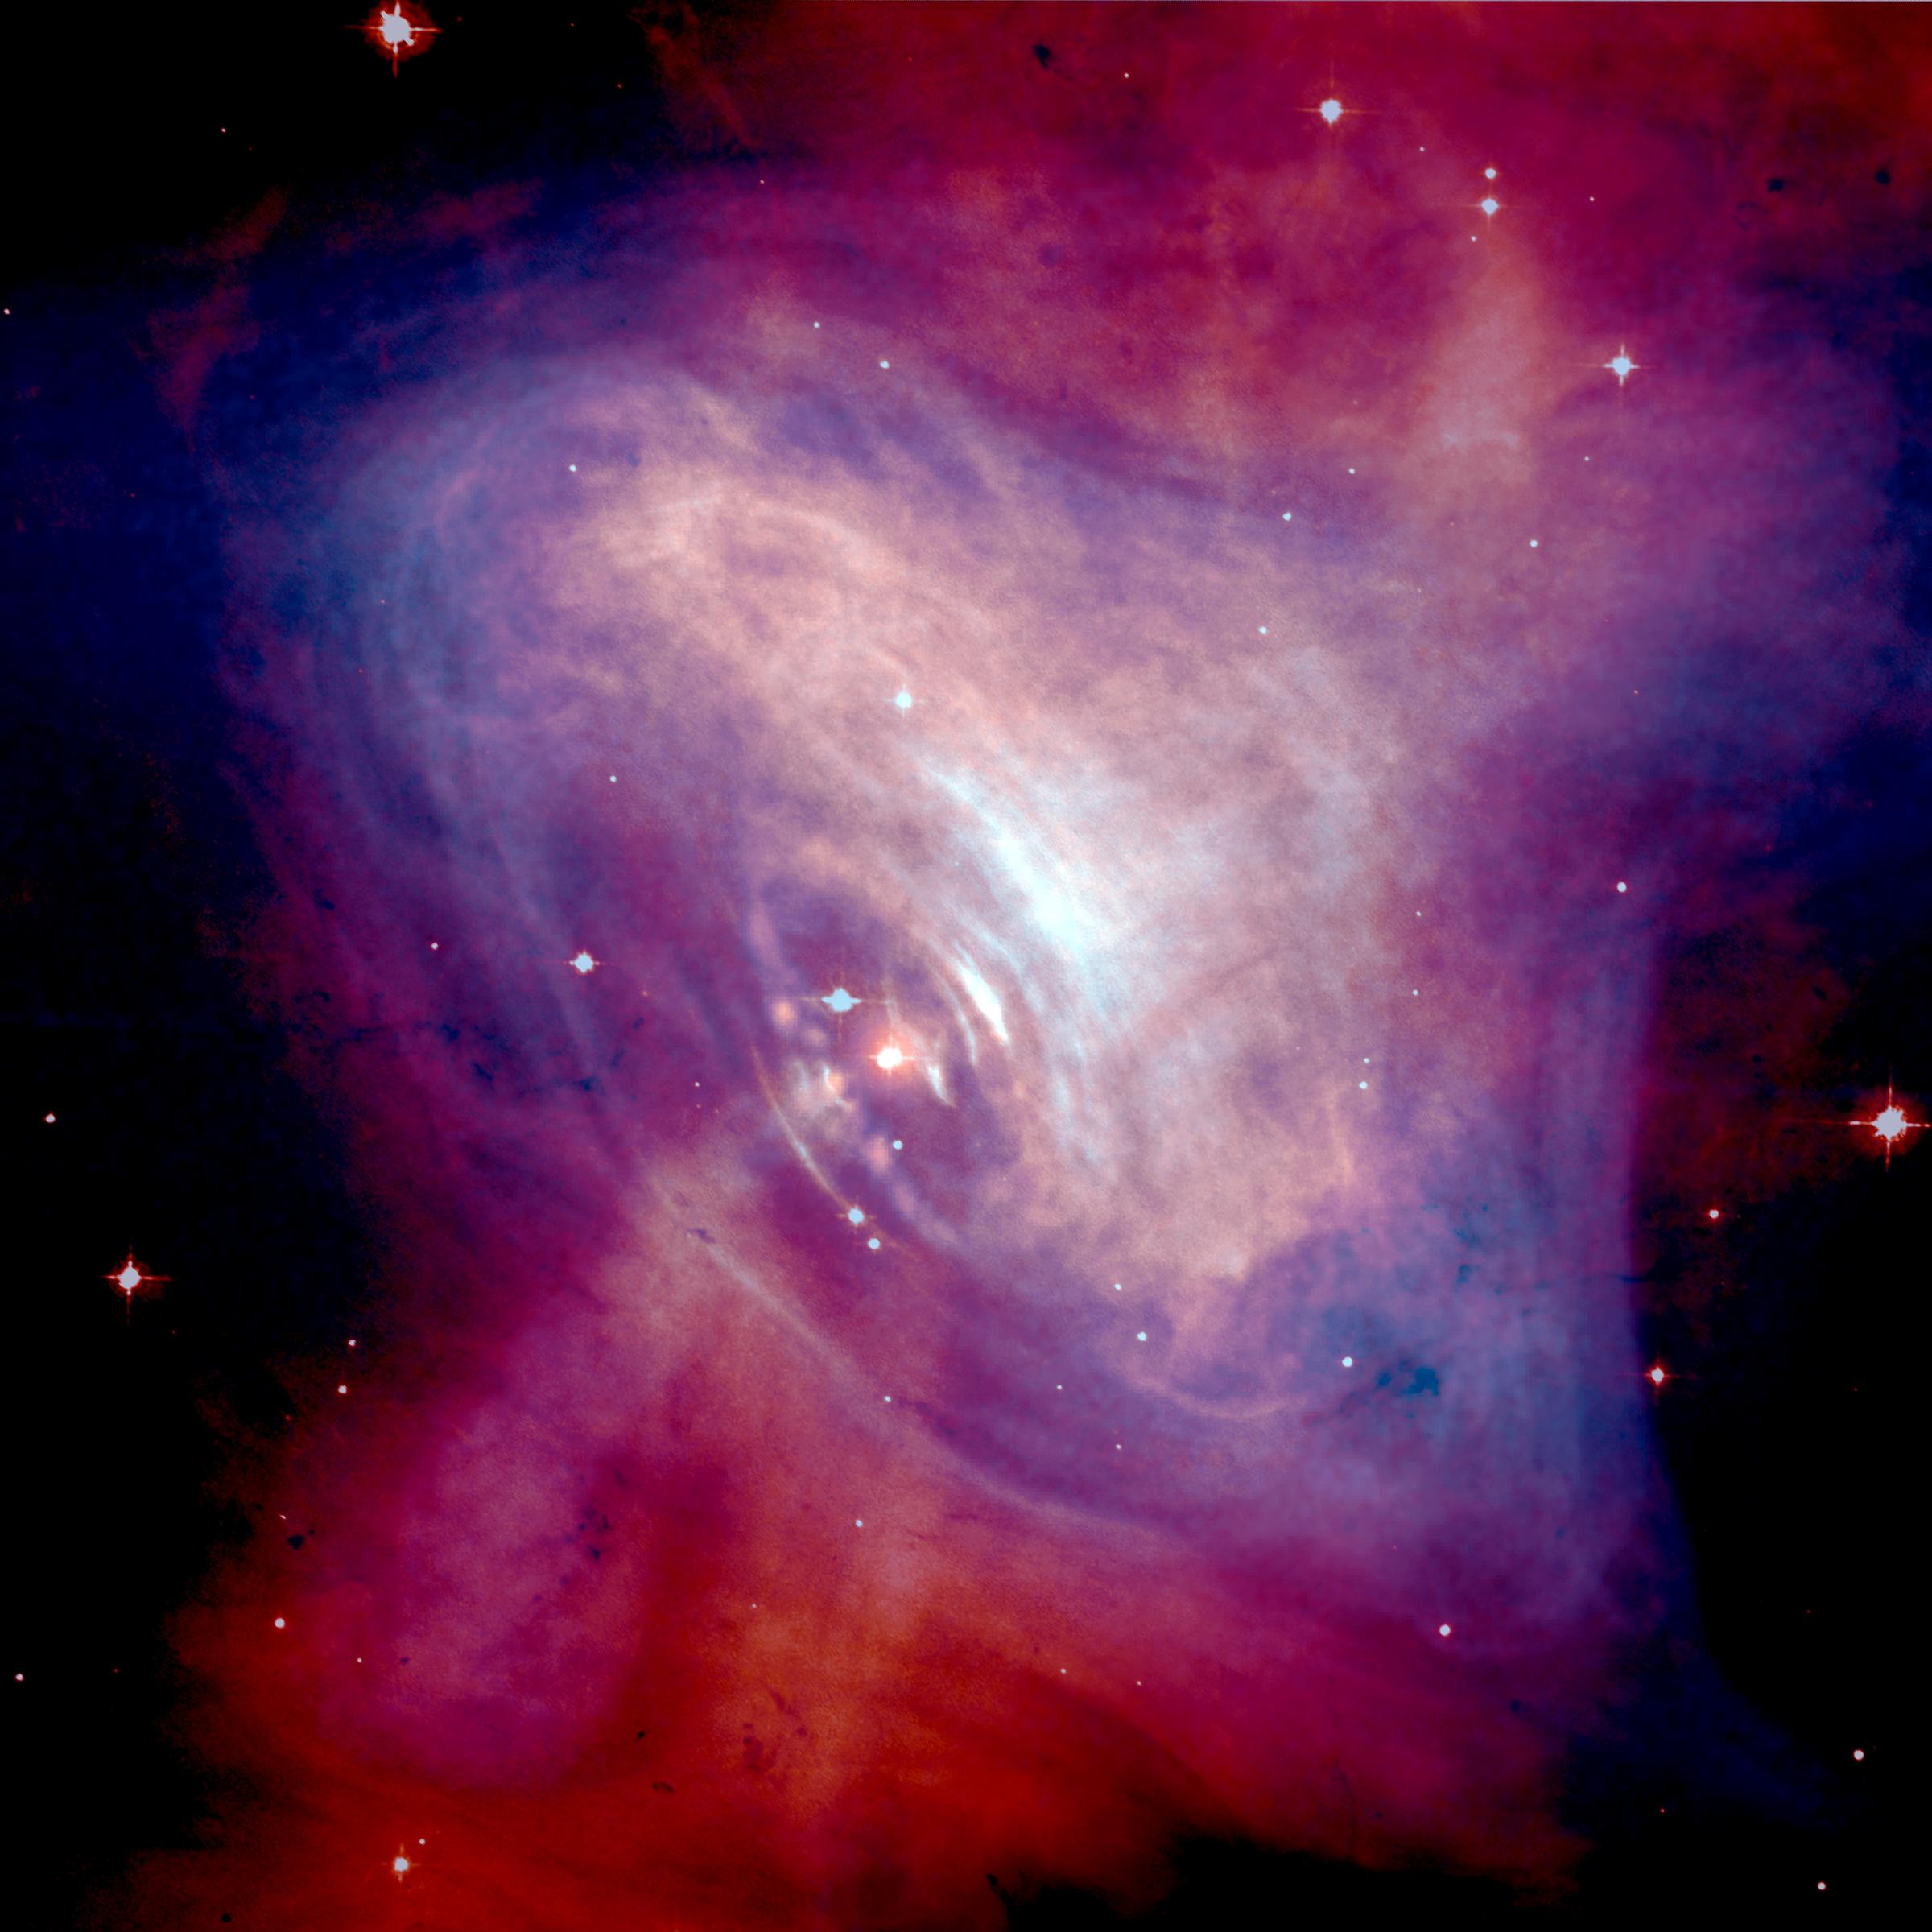 A composite image of the Crab Nebula showing the X-ray (blue), and optical (red) images superimposed. The size of the X-ray image is smaller because the higher energy X-ray emitting electrons radiate away their energy more quickly than the lower energy optically emitting electrons as they move.  Credits for X-ray Image:   NASA  /CXC/ASU/J. Hester et al.; Credits for Optical Image:   NASA  /HST/ASU/J. Hester et al.